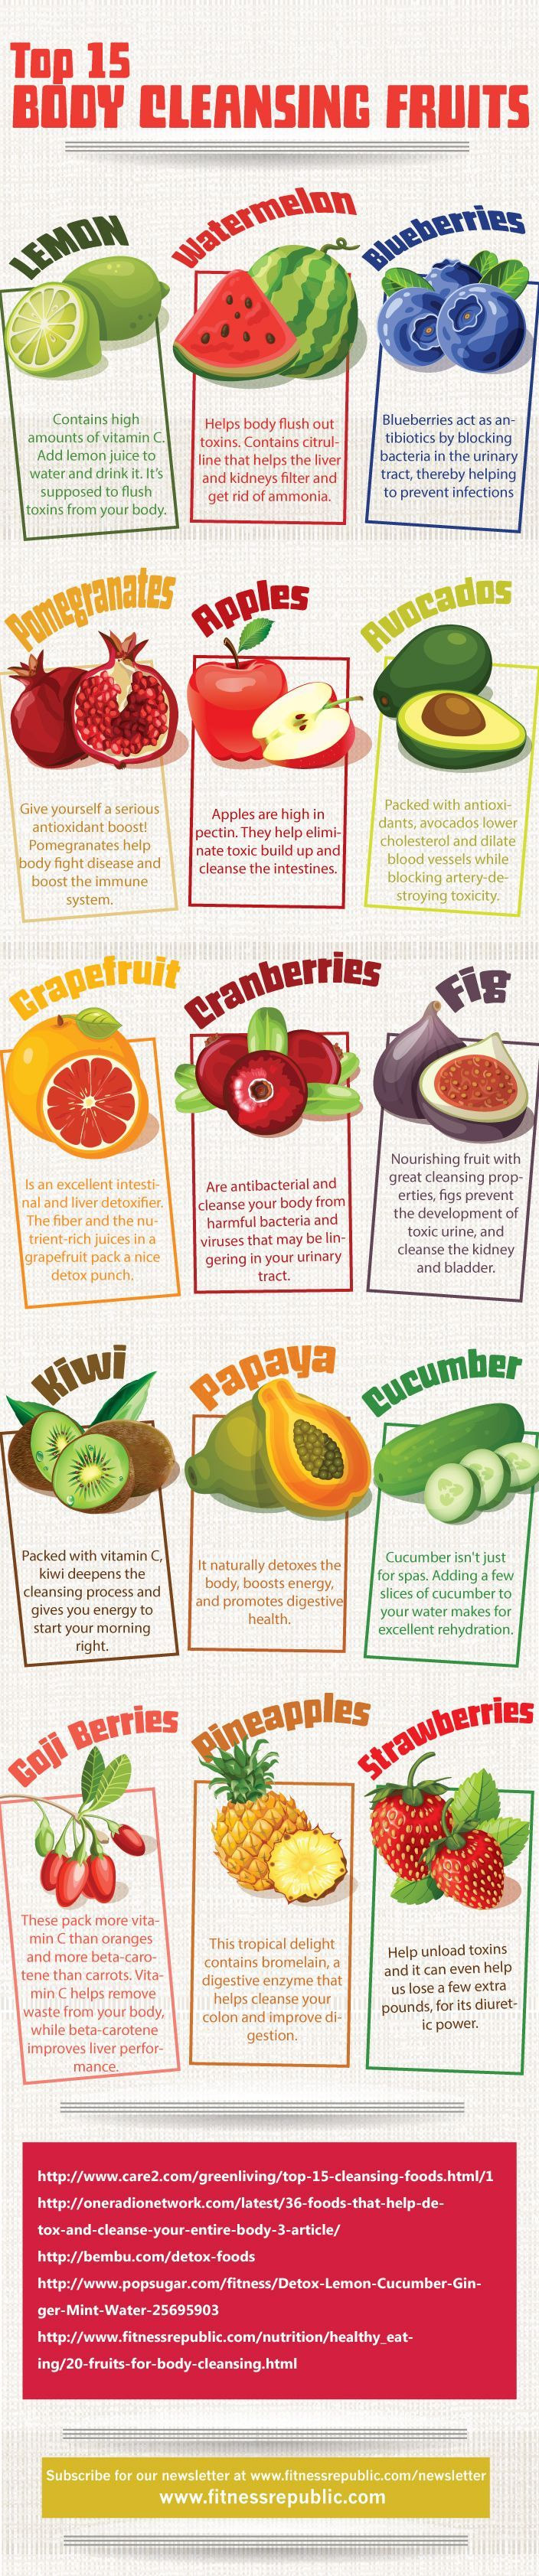 Top 15 Body Cleansing Fruits